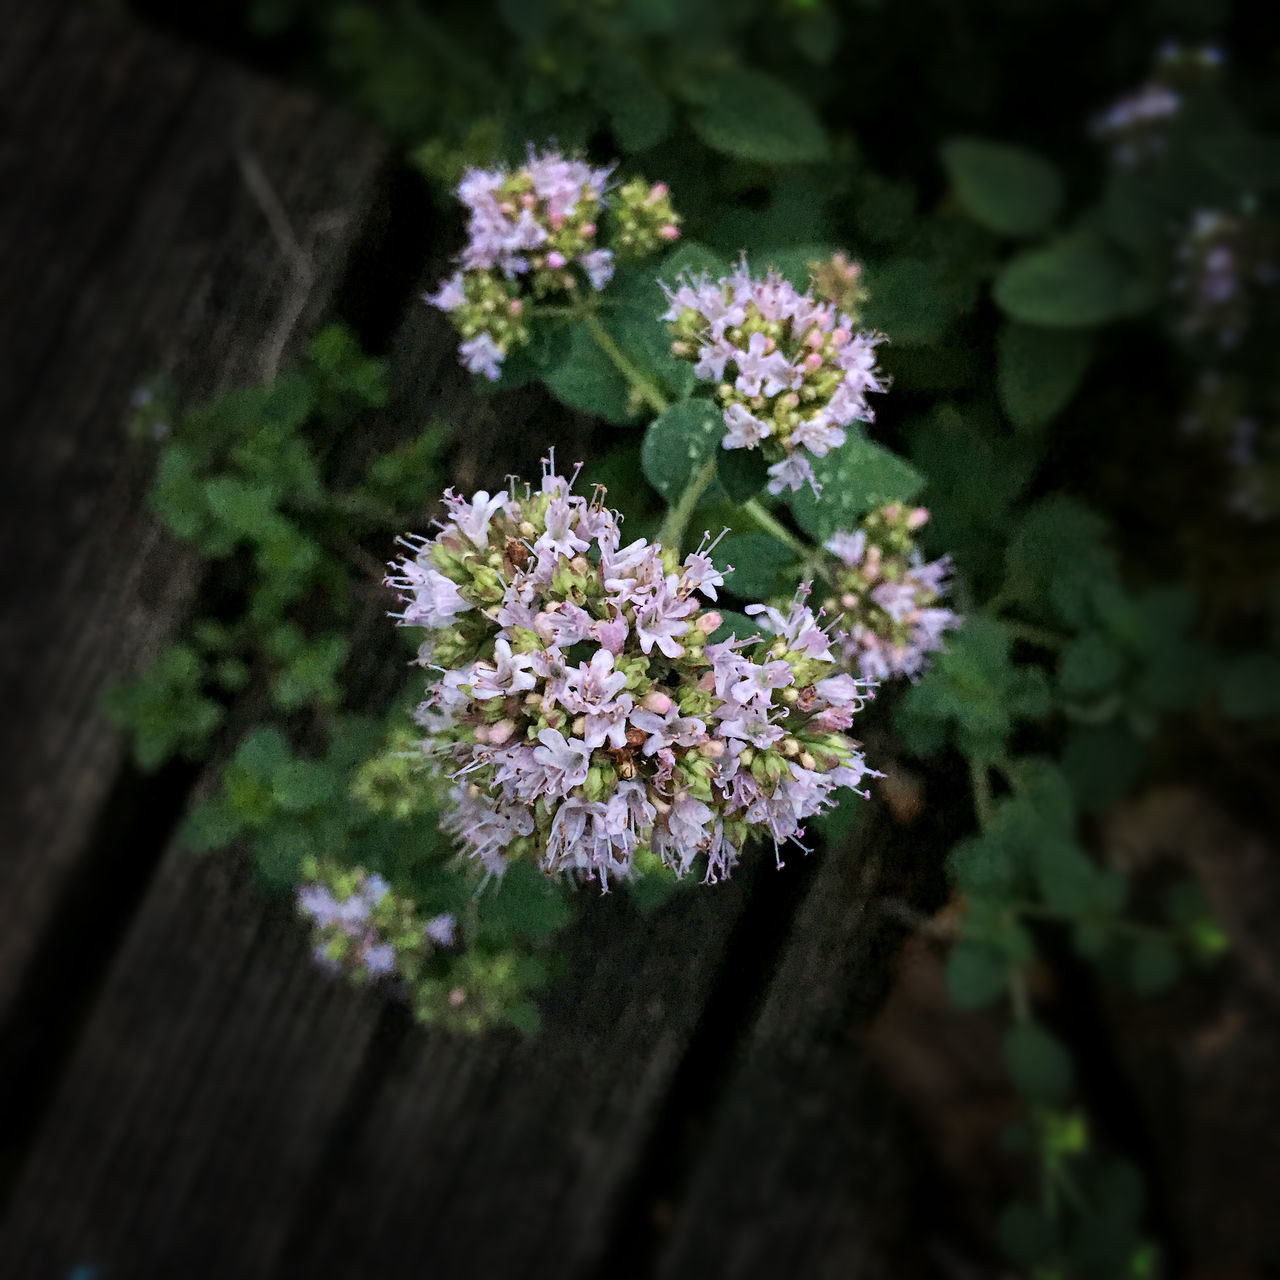 Beauty In Nature Blooming Botany Close-up Flower Focus On Foreground Fragility Getting Inspired Nature Origanum Vulgare Outdoors Selective Focus Silence Still Life Vertical View Wild Marjoram